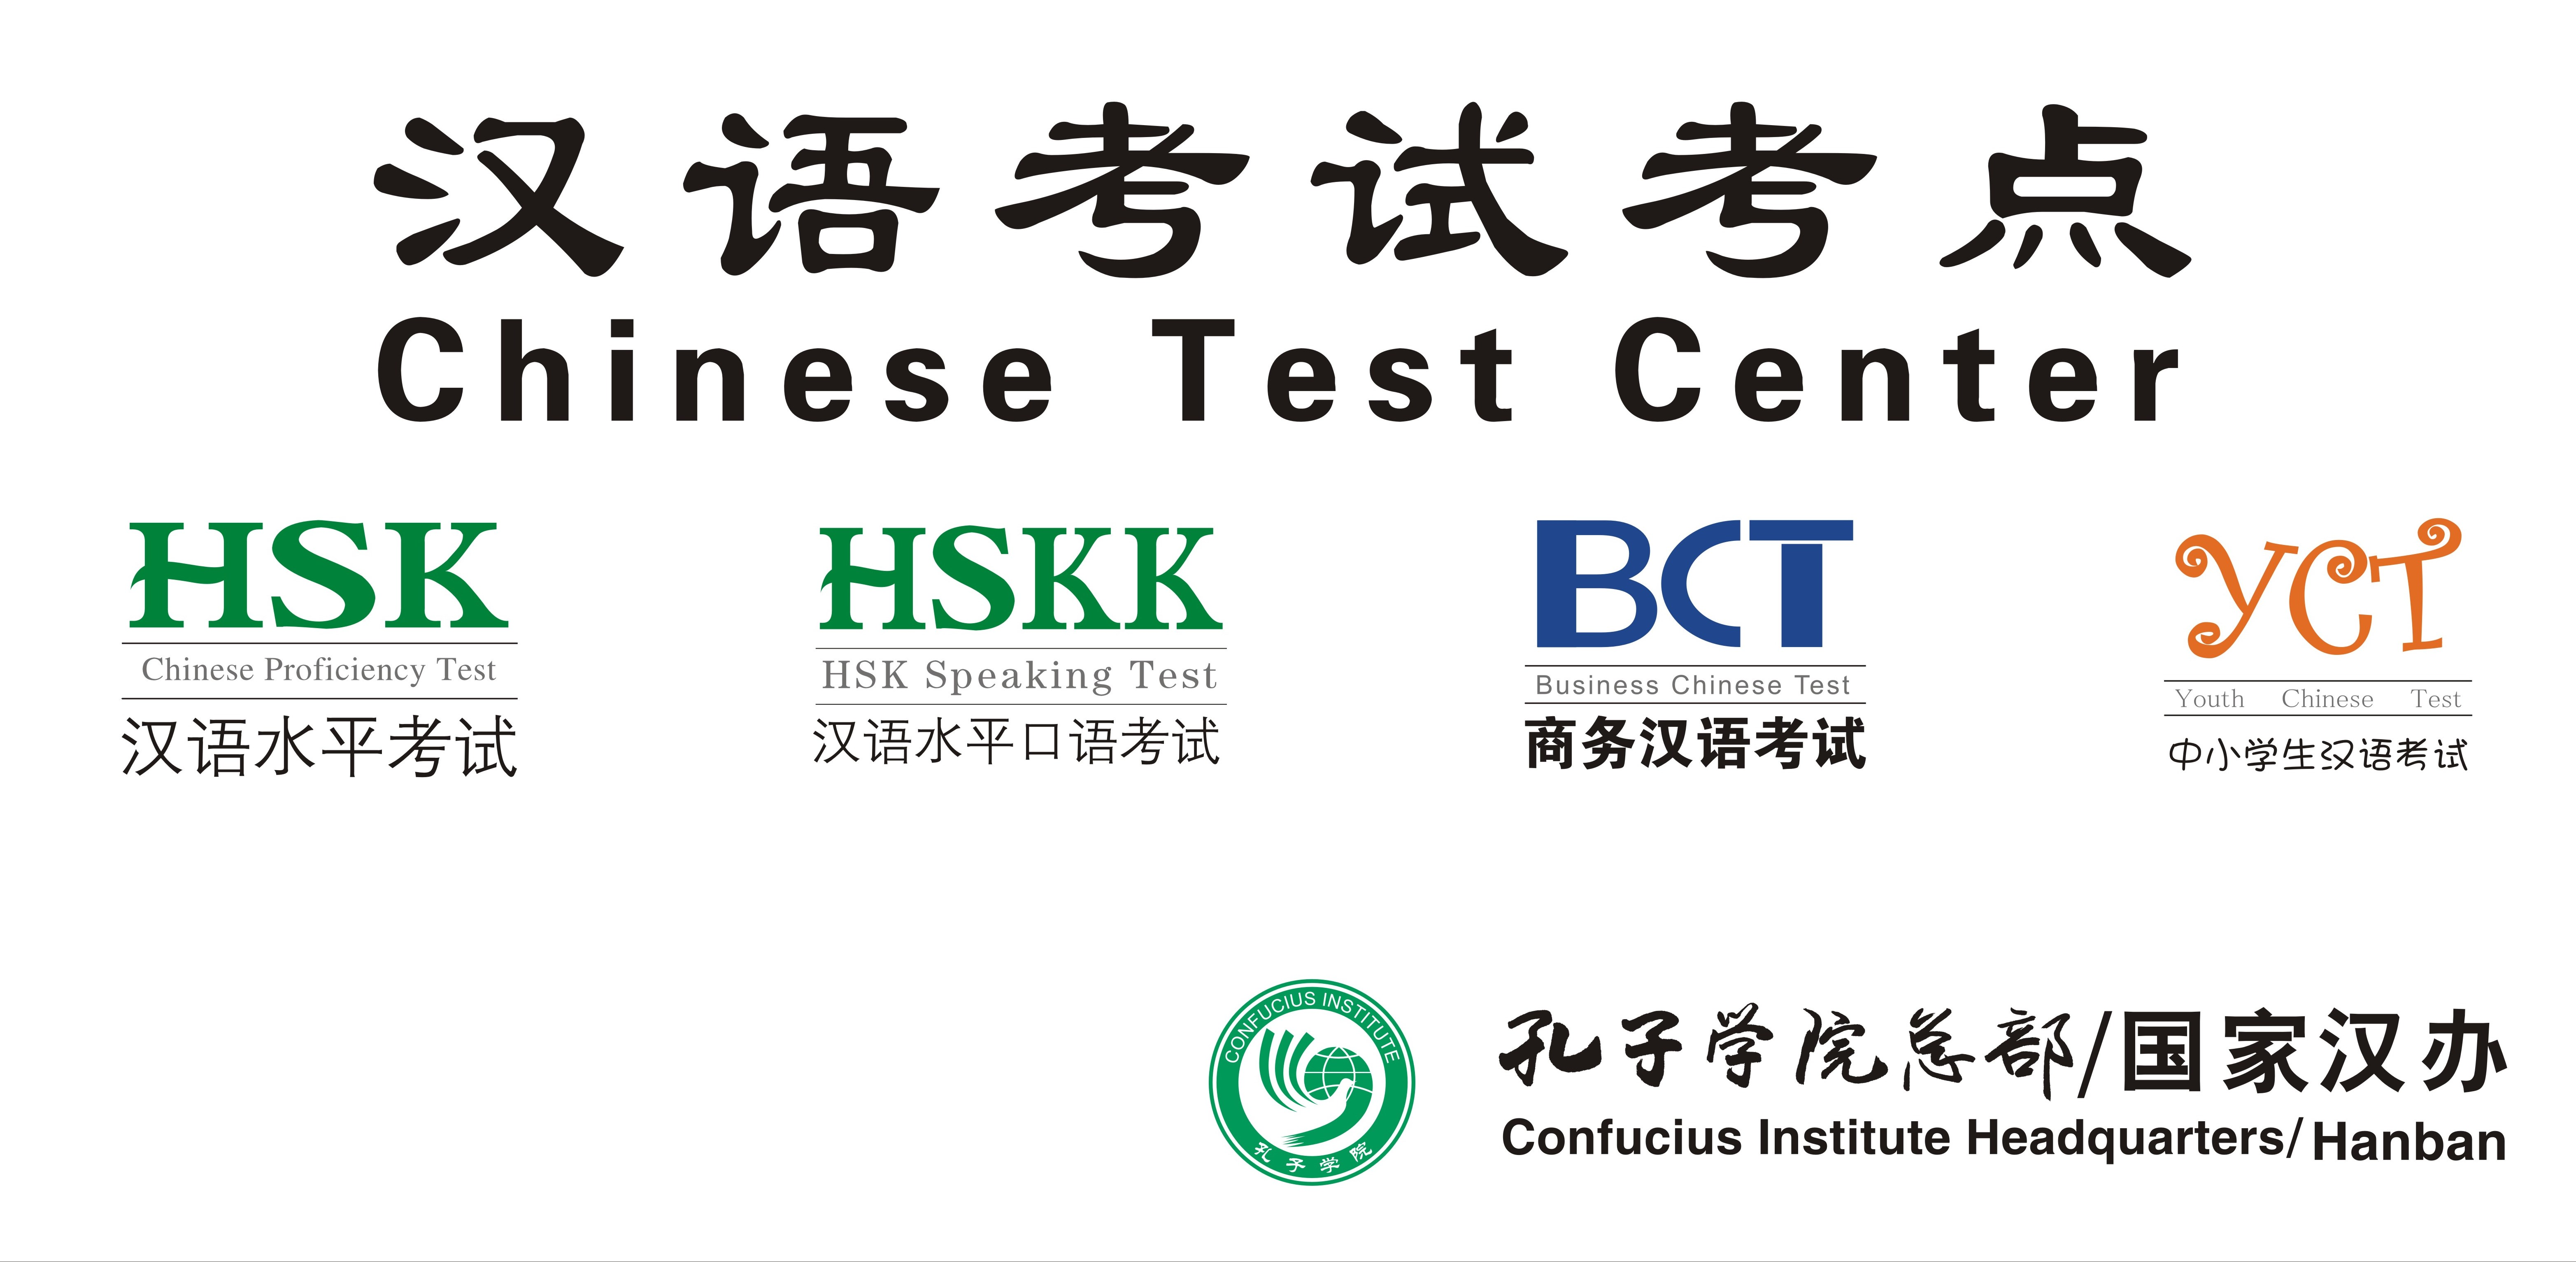 Confucius Institute Testing Center